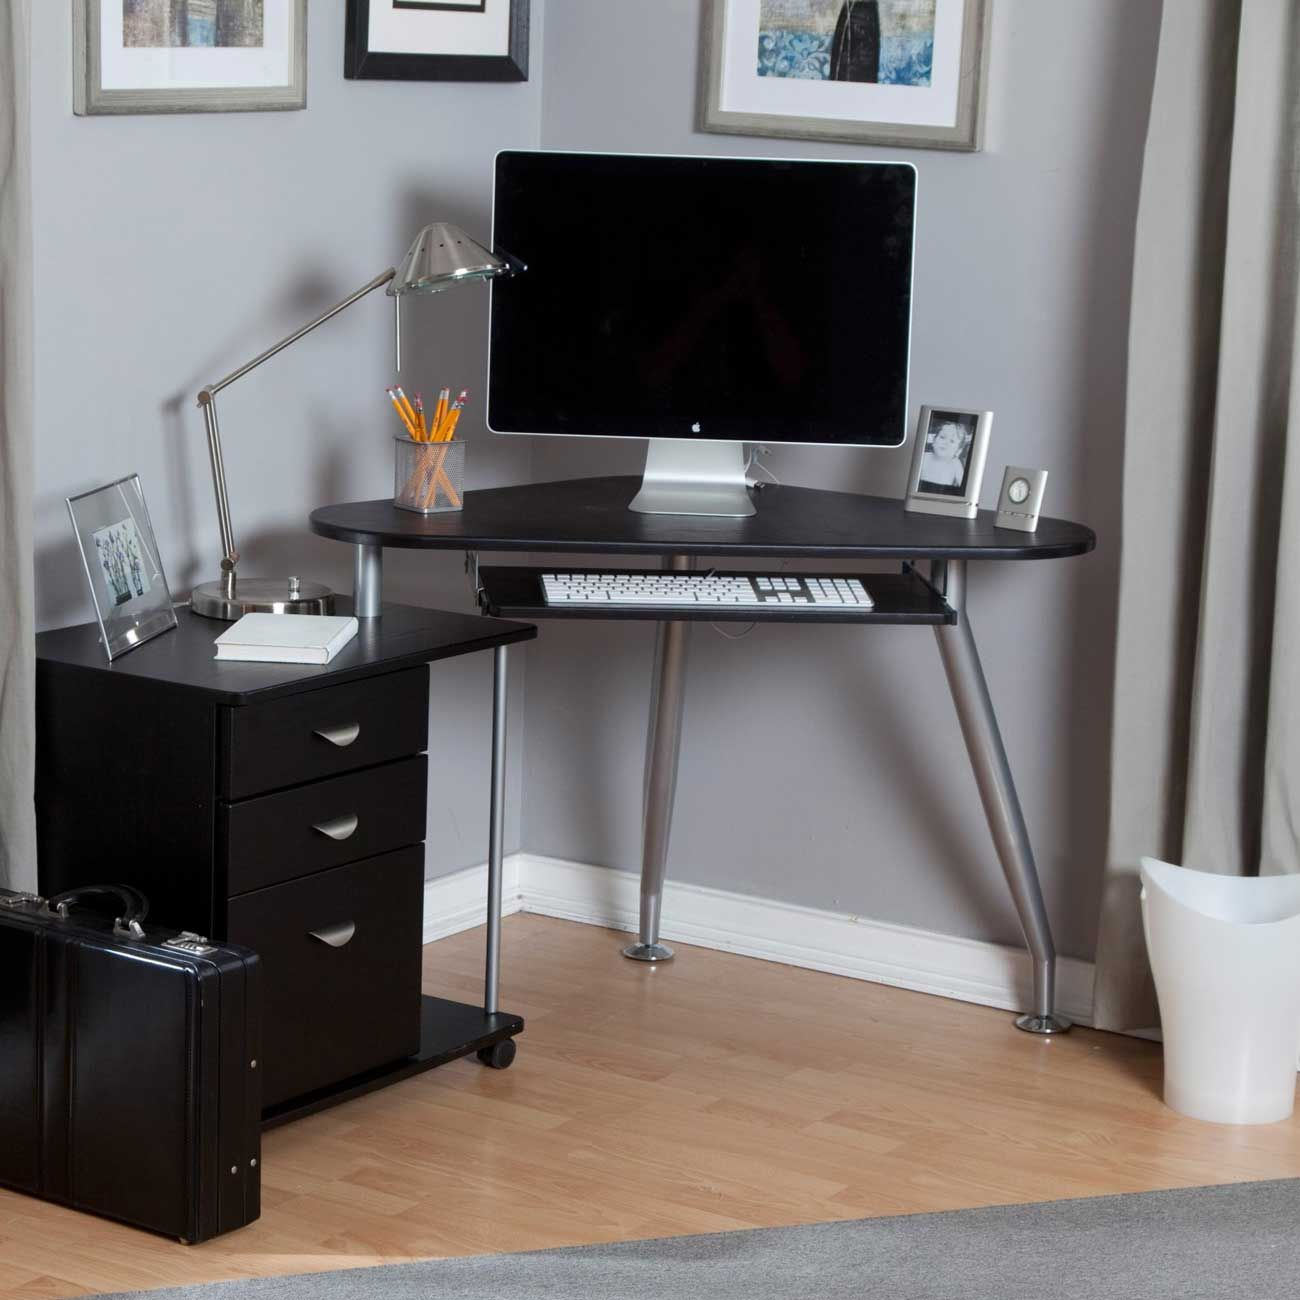 up size in top automatic full decor computer desks lovely home stand workstation extra creative tall desk attachment decoration decors adjustable or of elevated ikea height corner station raising standing hackers